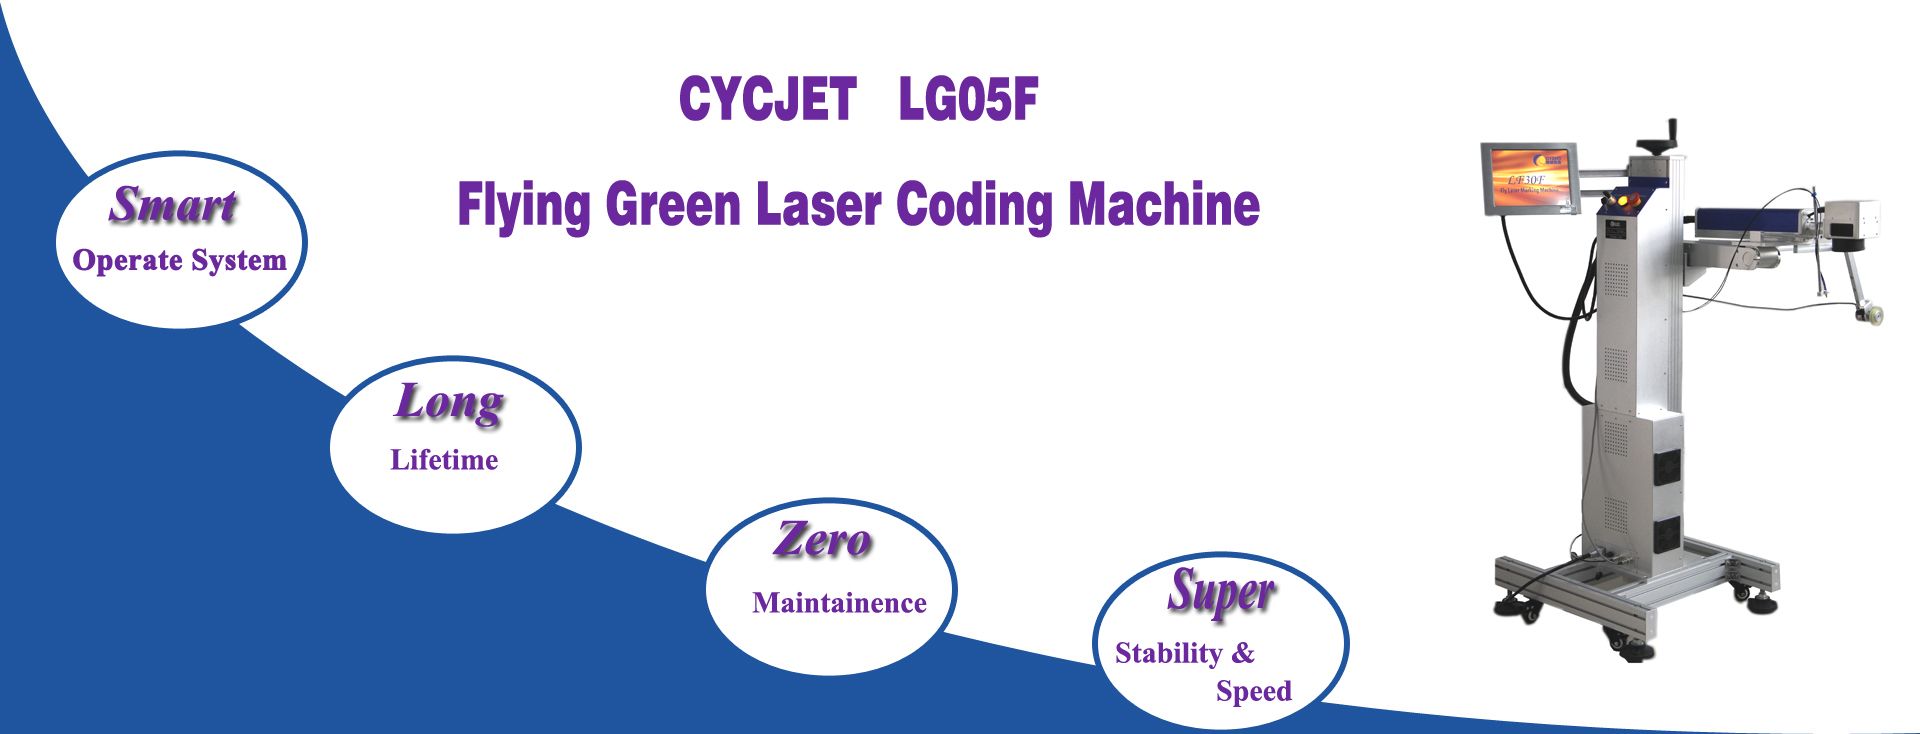 Details of CYCJET Green Laser Coding Machine-LG05F.jpg